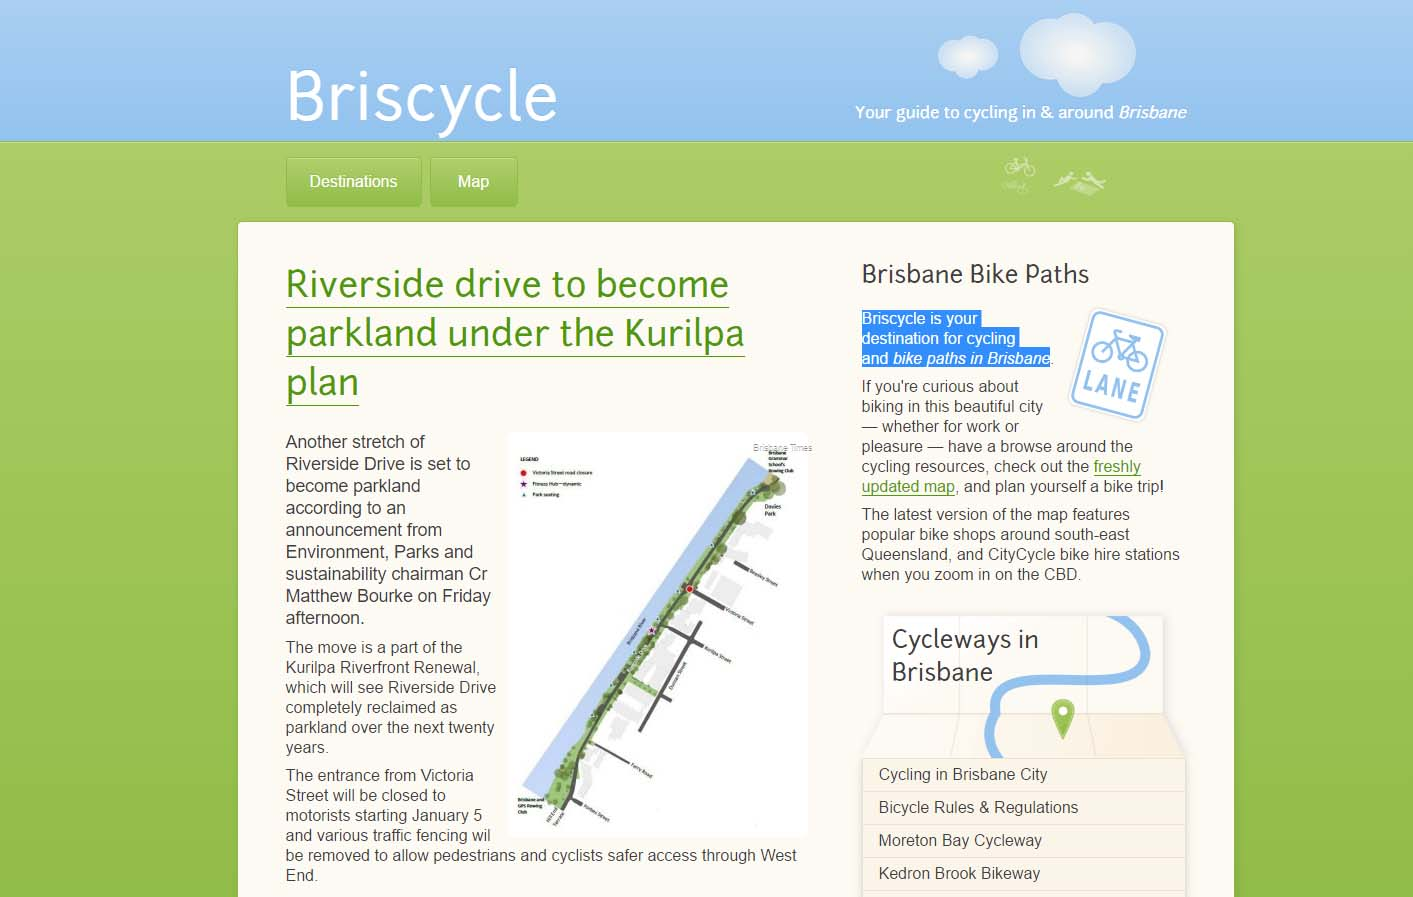 Briscycle - cycling in Brisbane